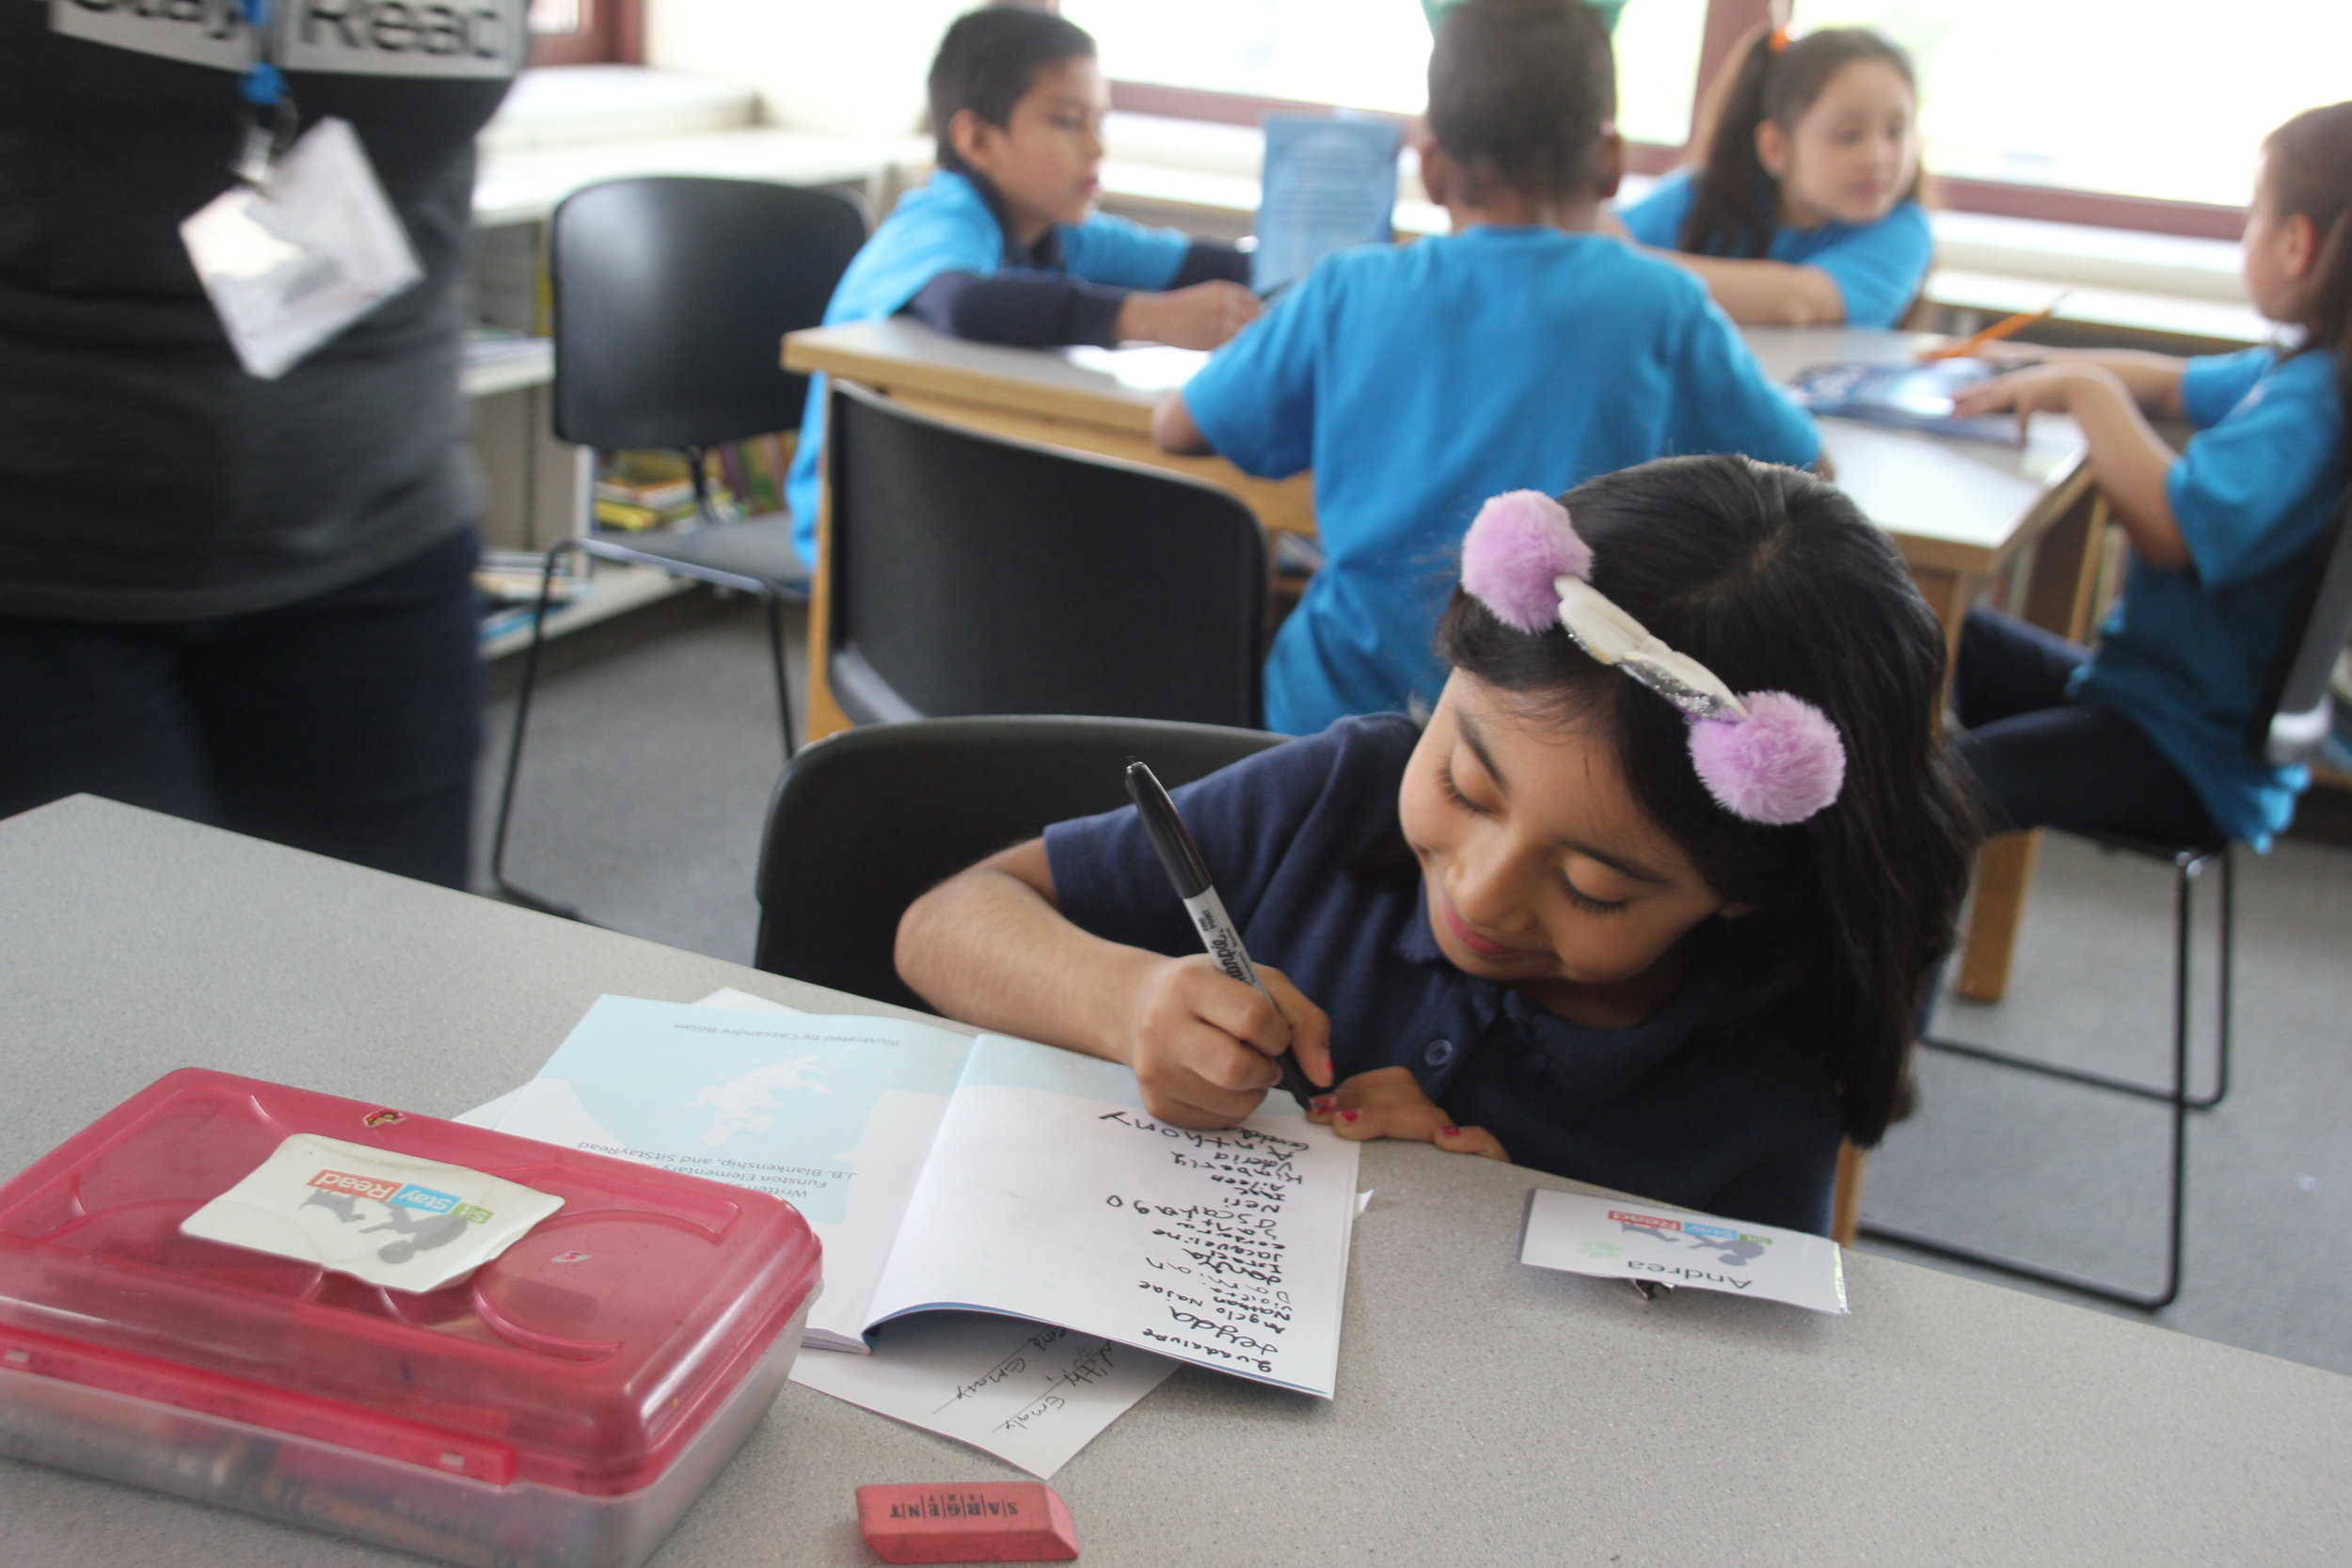 Second grader Andrea signing the book she, and other students, helped create.